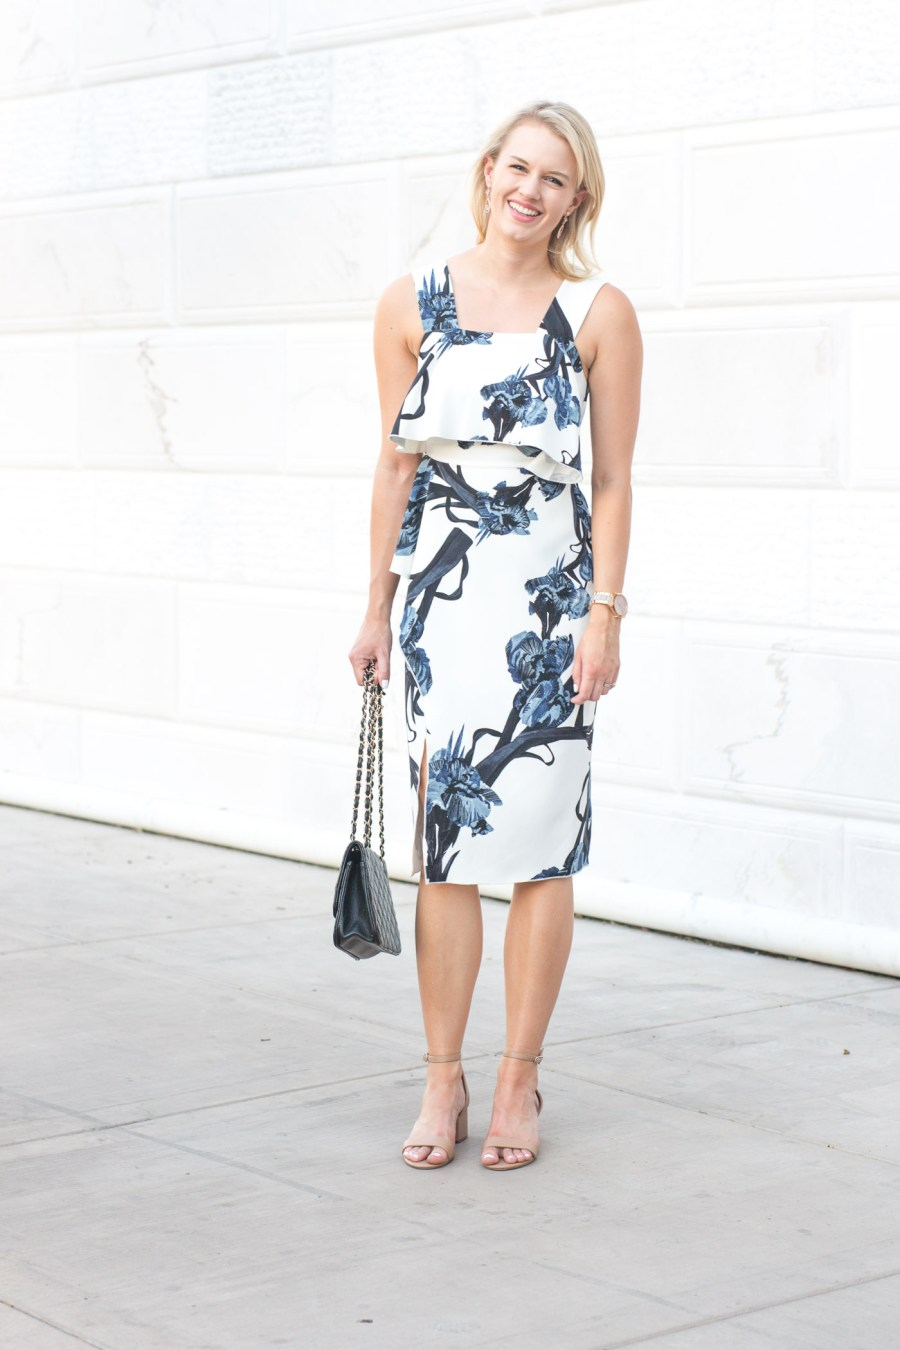 Three Spring and Summer Dress Trends with Topshop, fashion blog, Treats and Trends